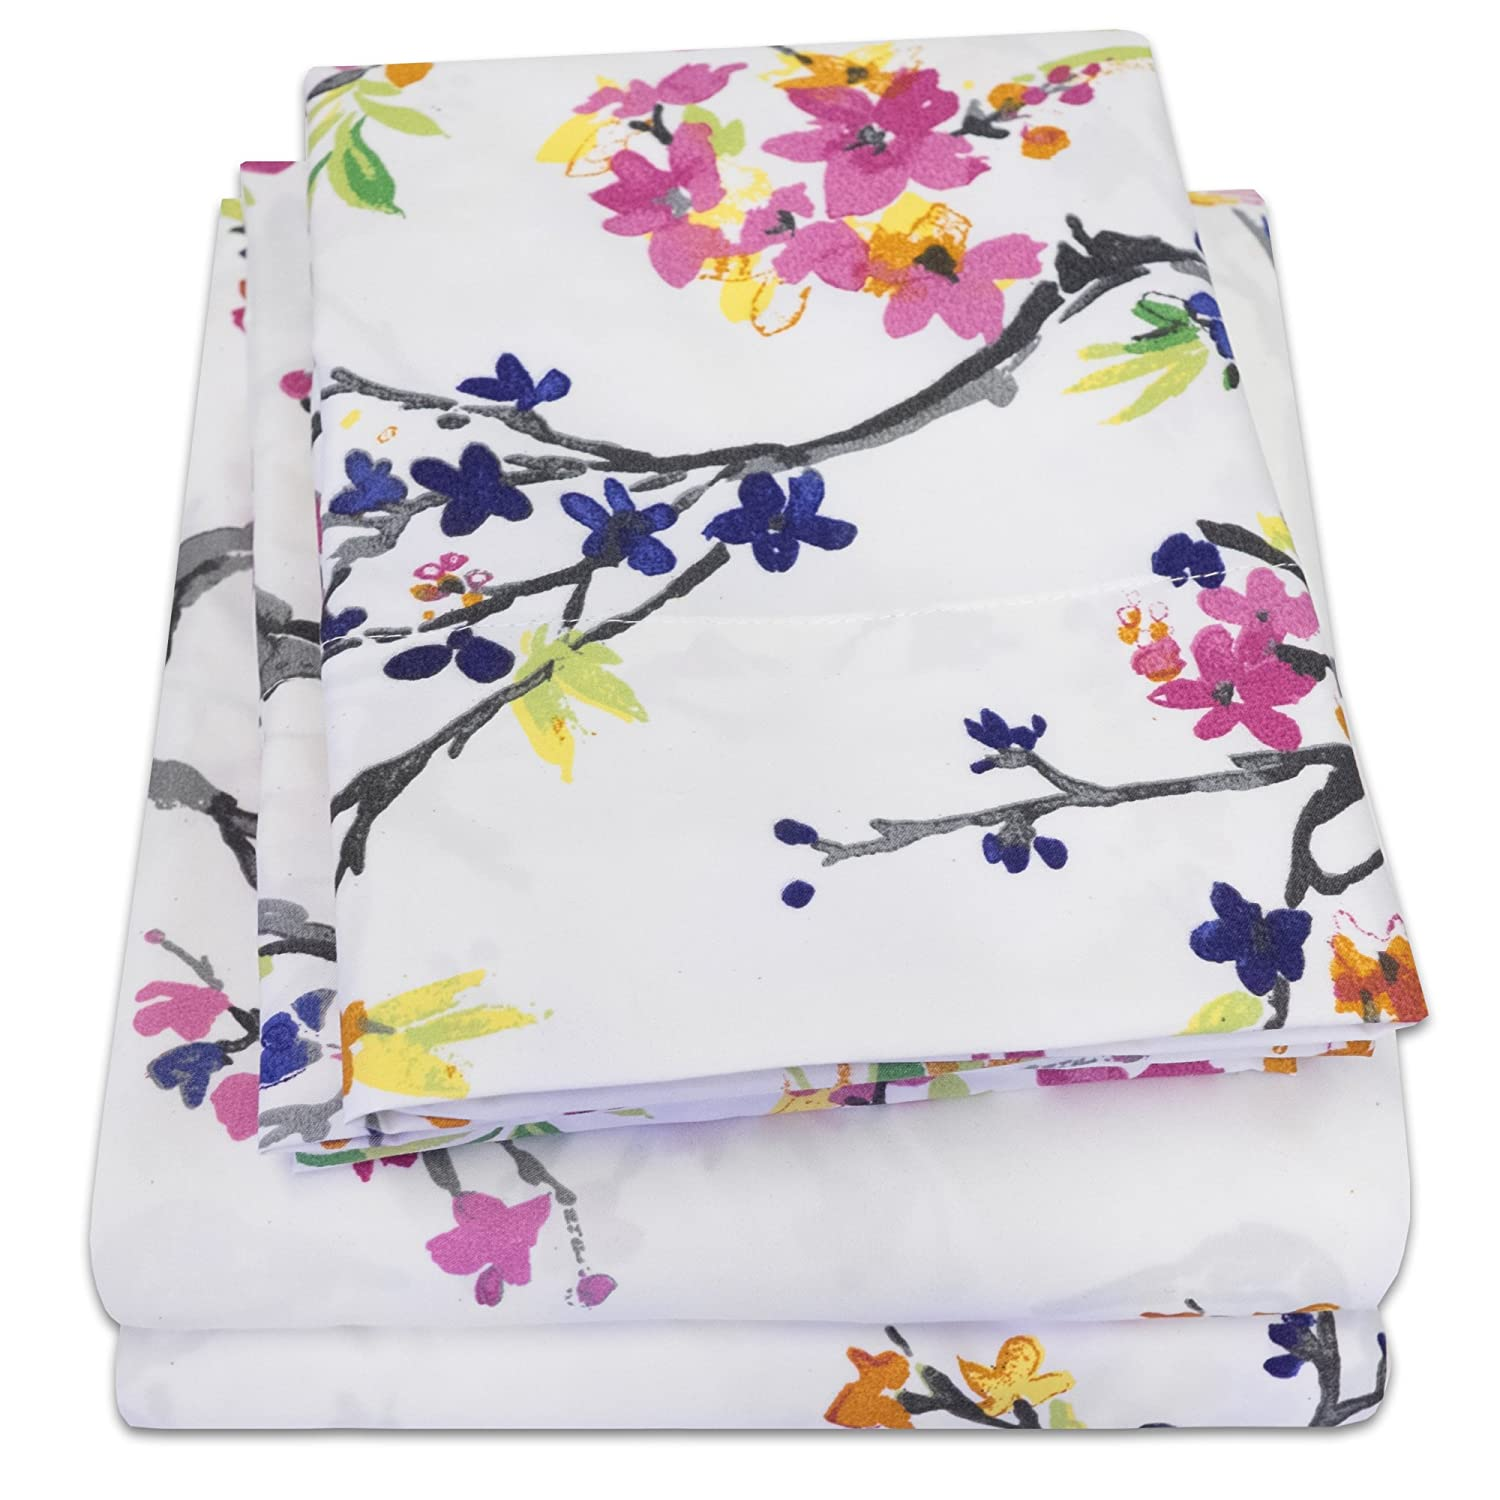 1500 Supreme Collection Extra Soft Botanical Bright Whimsical Watercolor Pattern Sheet Set, Queen - Luxury Bed Sheets Set with Deep Pocket Wrinkle Free Hypoallergenic Bedding, Printed Pattern, Queen